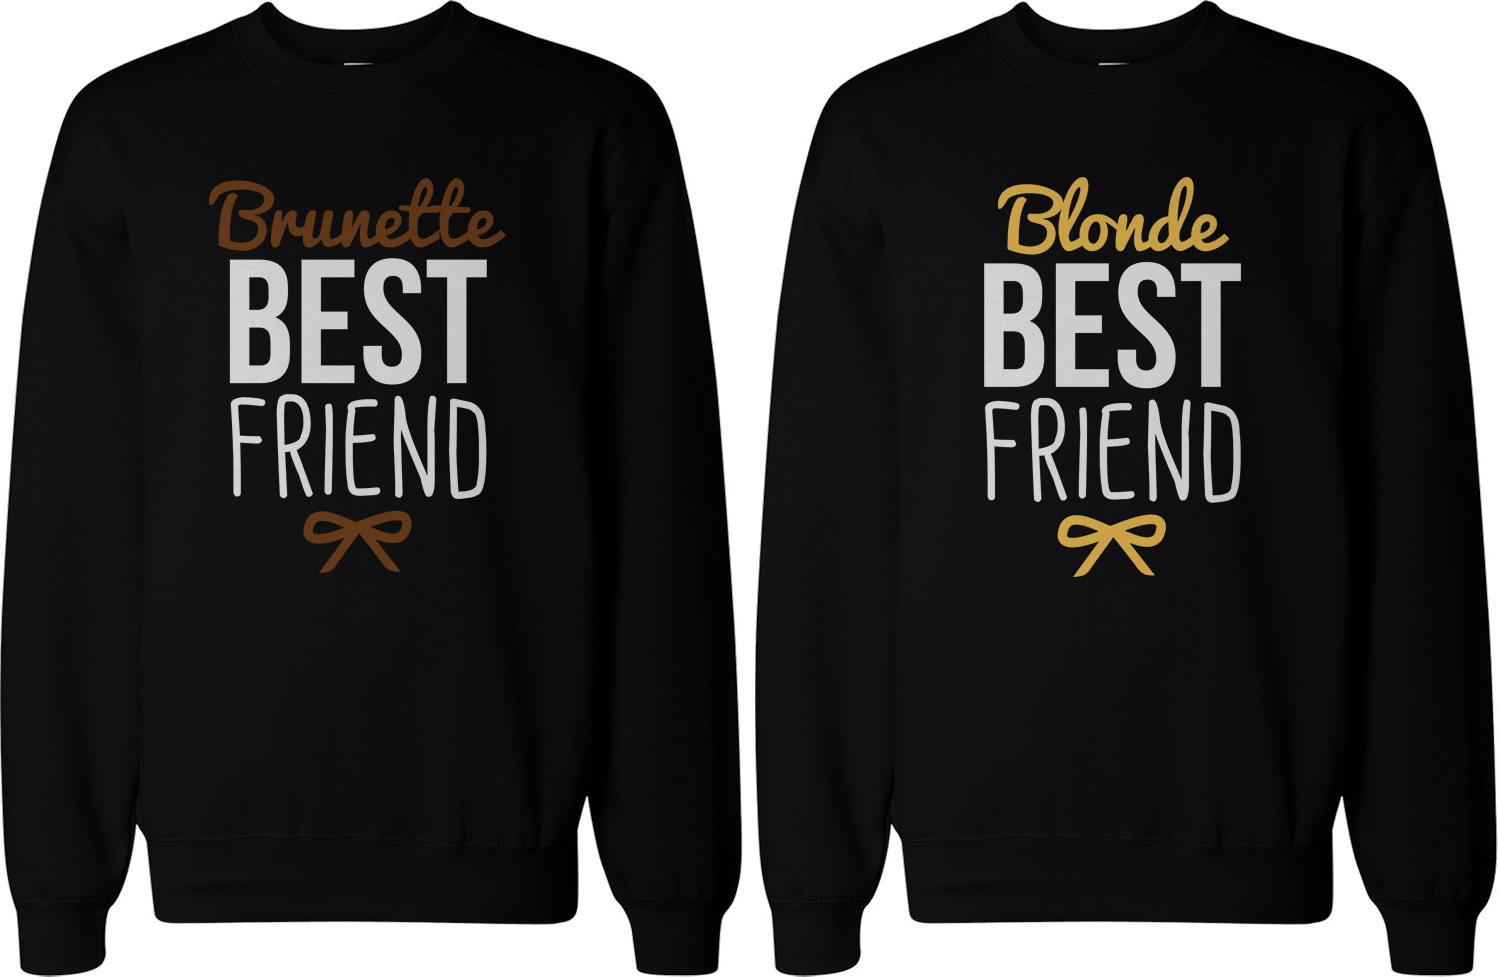 Fonts Please Blonde and Friend